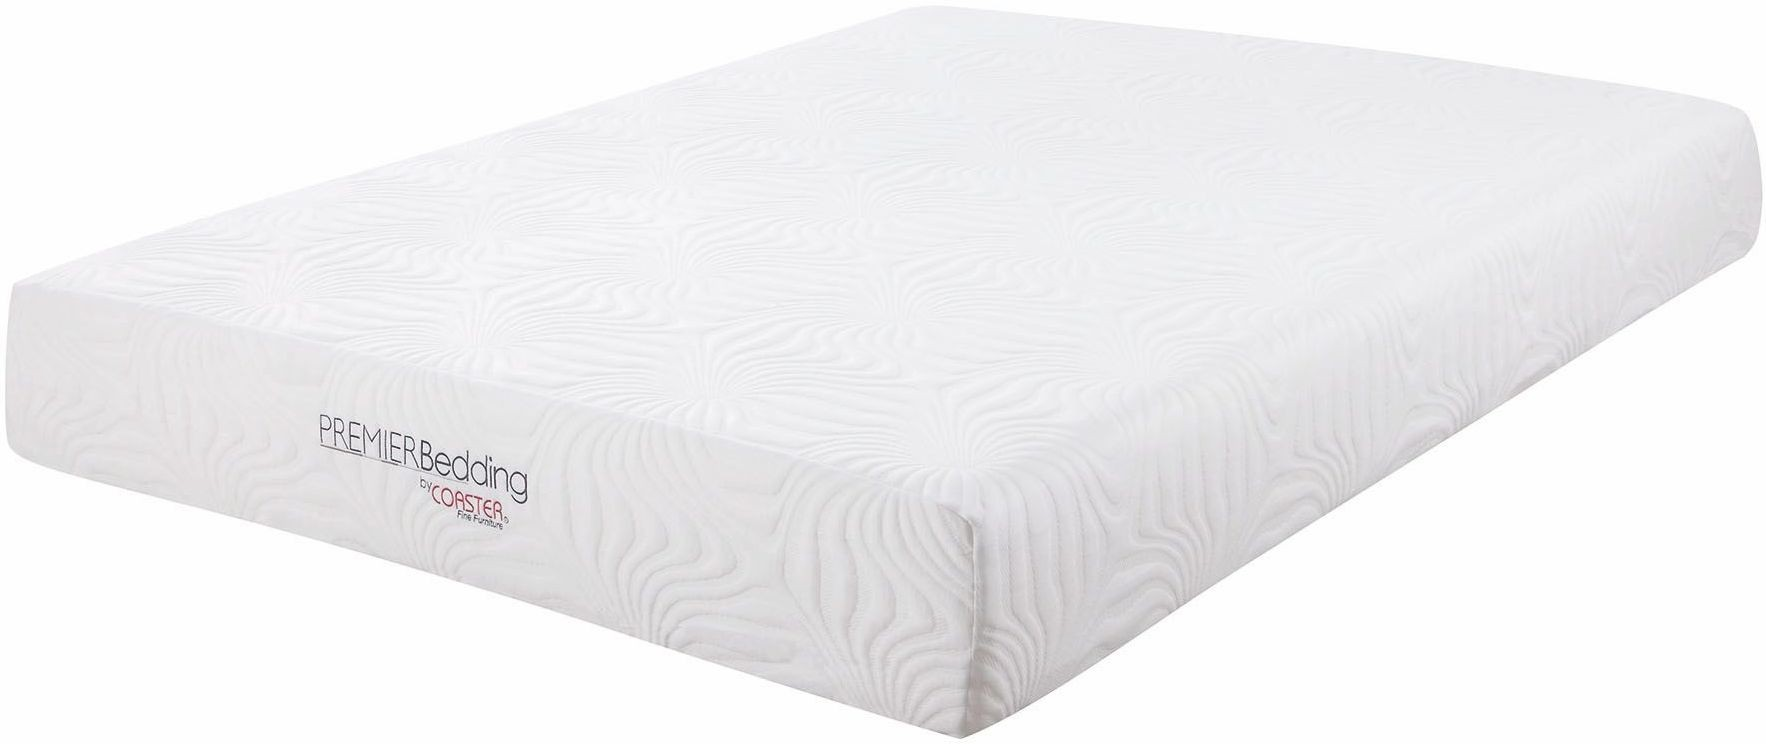 Key 10 king memory foam mattress from coaster coleman furniture Memory foam king mattress